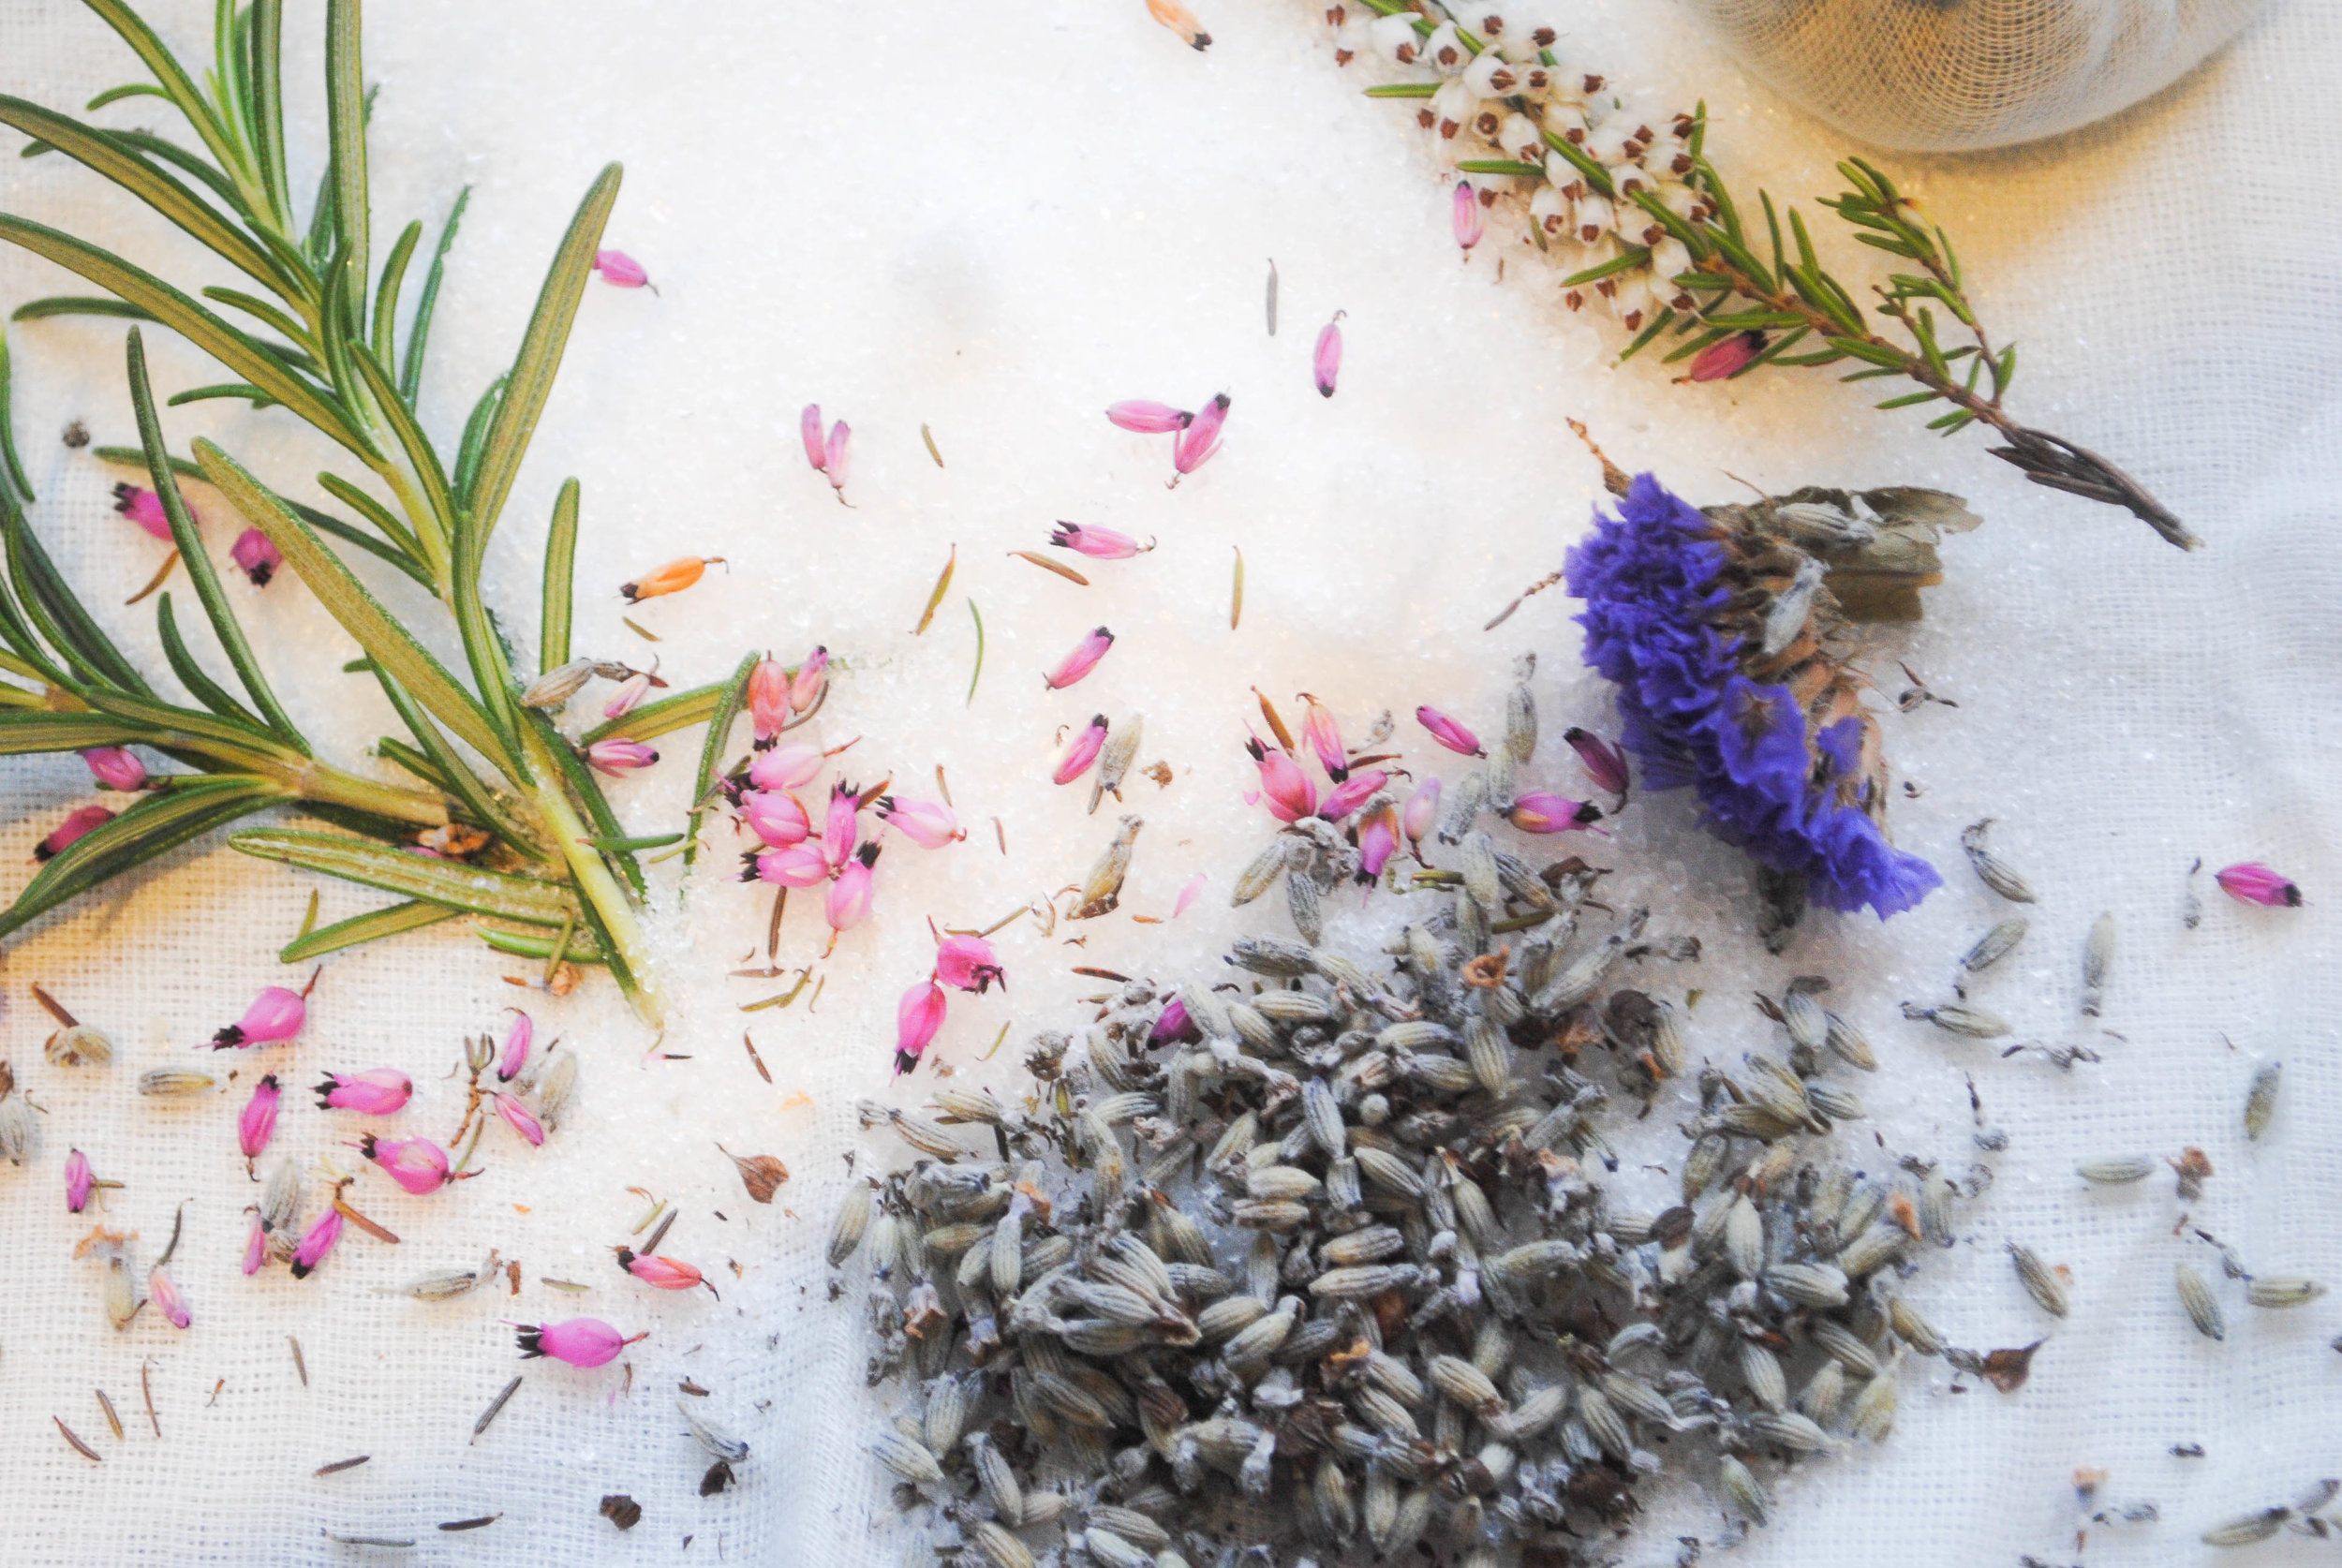 Stress Management: Relaxing in a lovely bath of lavender and epsom salts can really melt away the stress of the day.